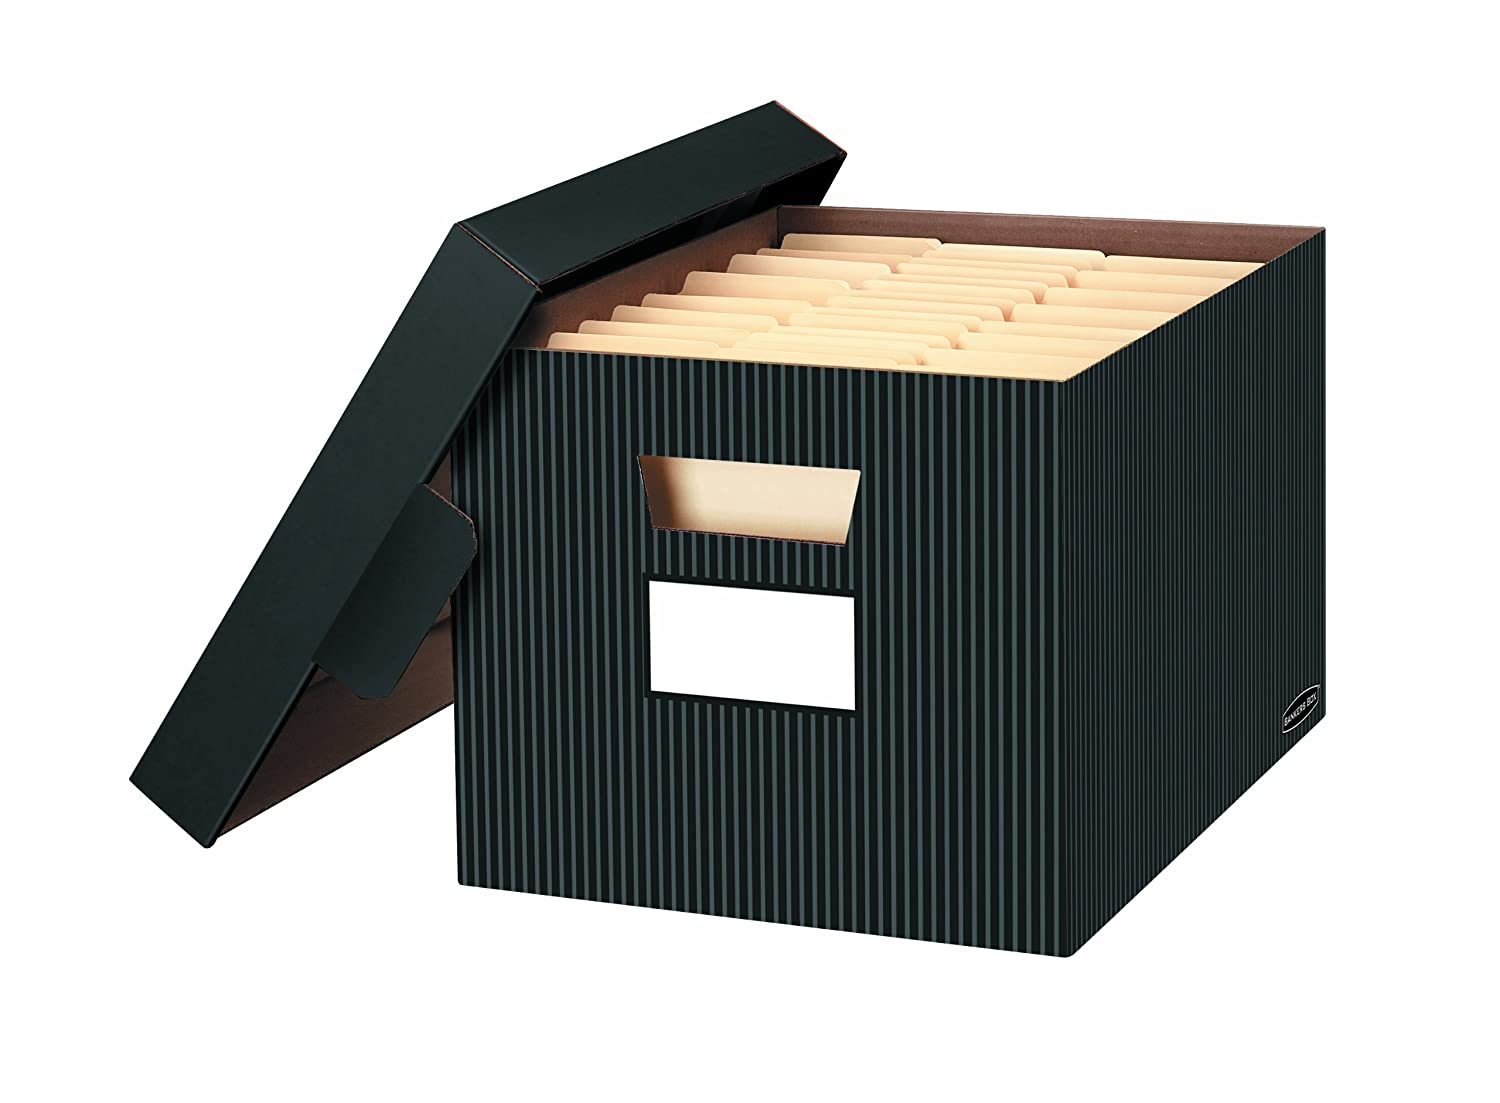 office file boxes.  Boxes Amazoncom  Bankers Box StoreFile Decorative Storage Boxes LetterLegal  10 X 12 15 Inches Pinstripe 4 Pack 0029803 Office Products To File Boxes